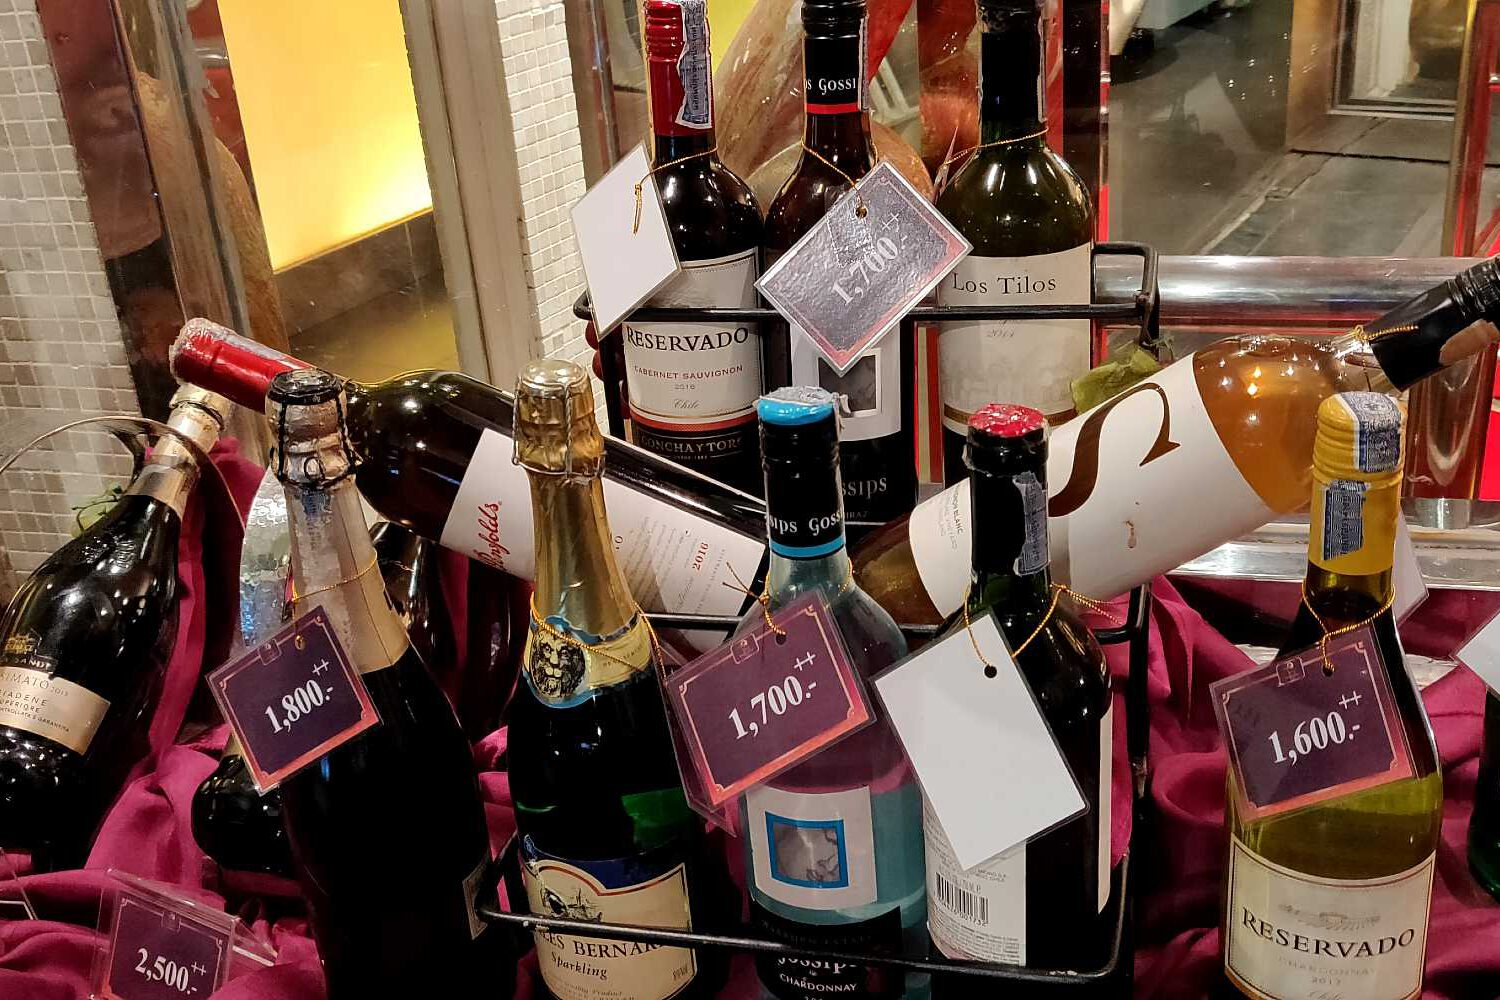 bottles of wine, champagne and beer on a table with price tags